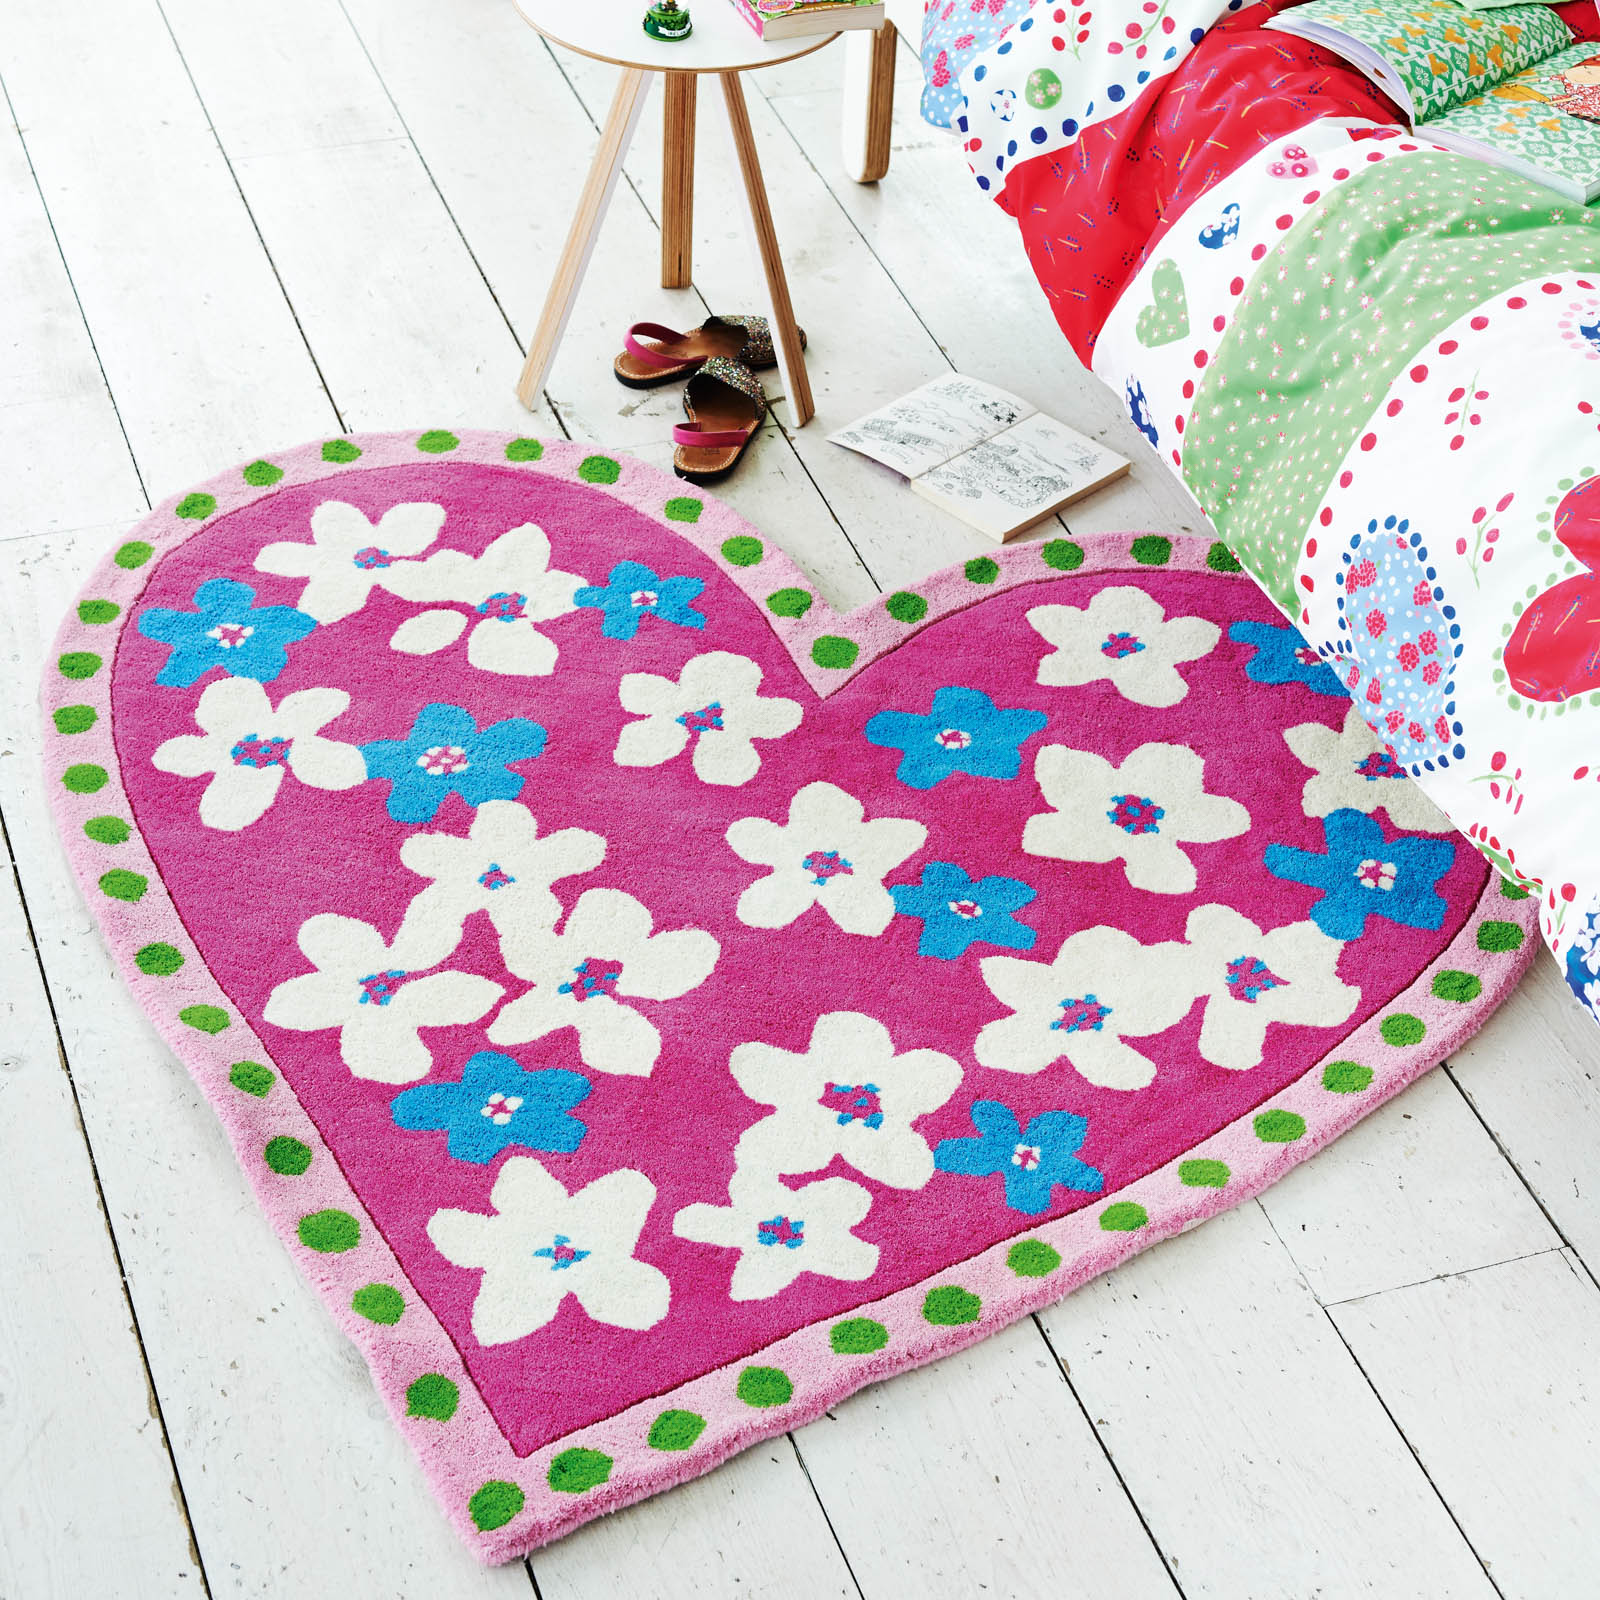 Candy Hearts Fuchsia Rug by Designers Guild